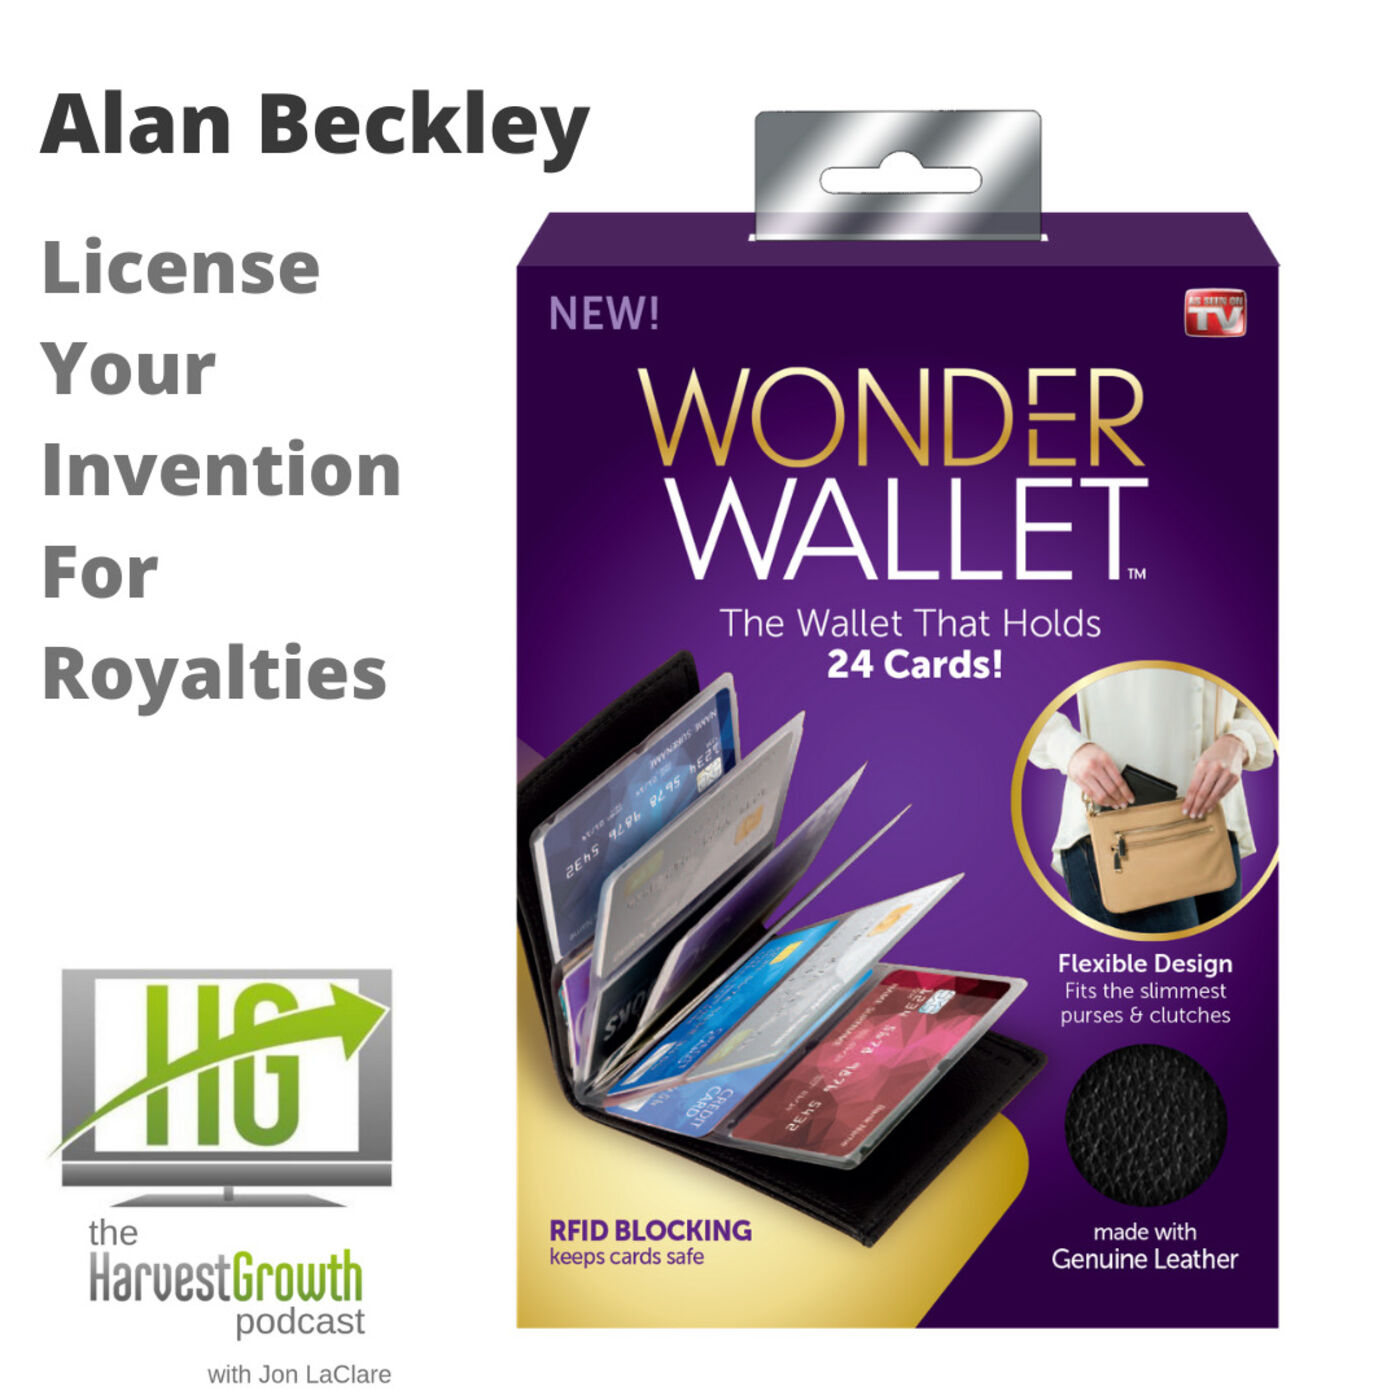 License Your Invention For Royalties